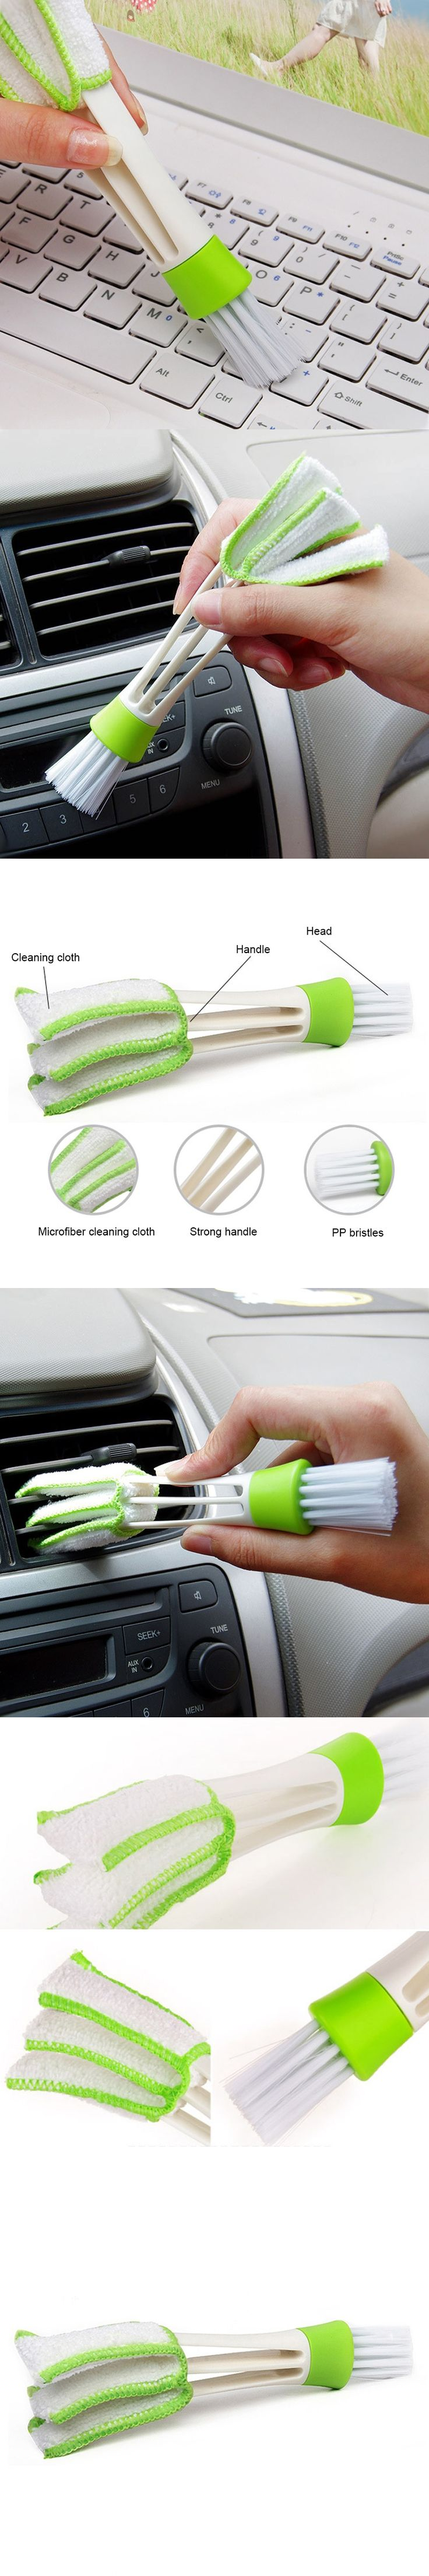 1Pc Car Washer Microfiber Car Cleaning Brush For Air-condition Cleaner Computer Clean Duster Tools